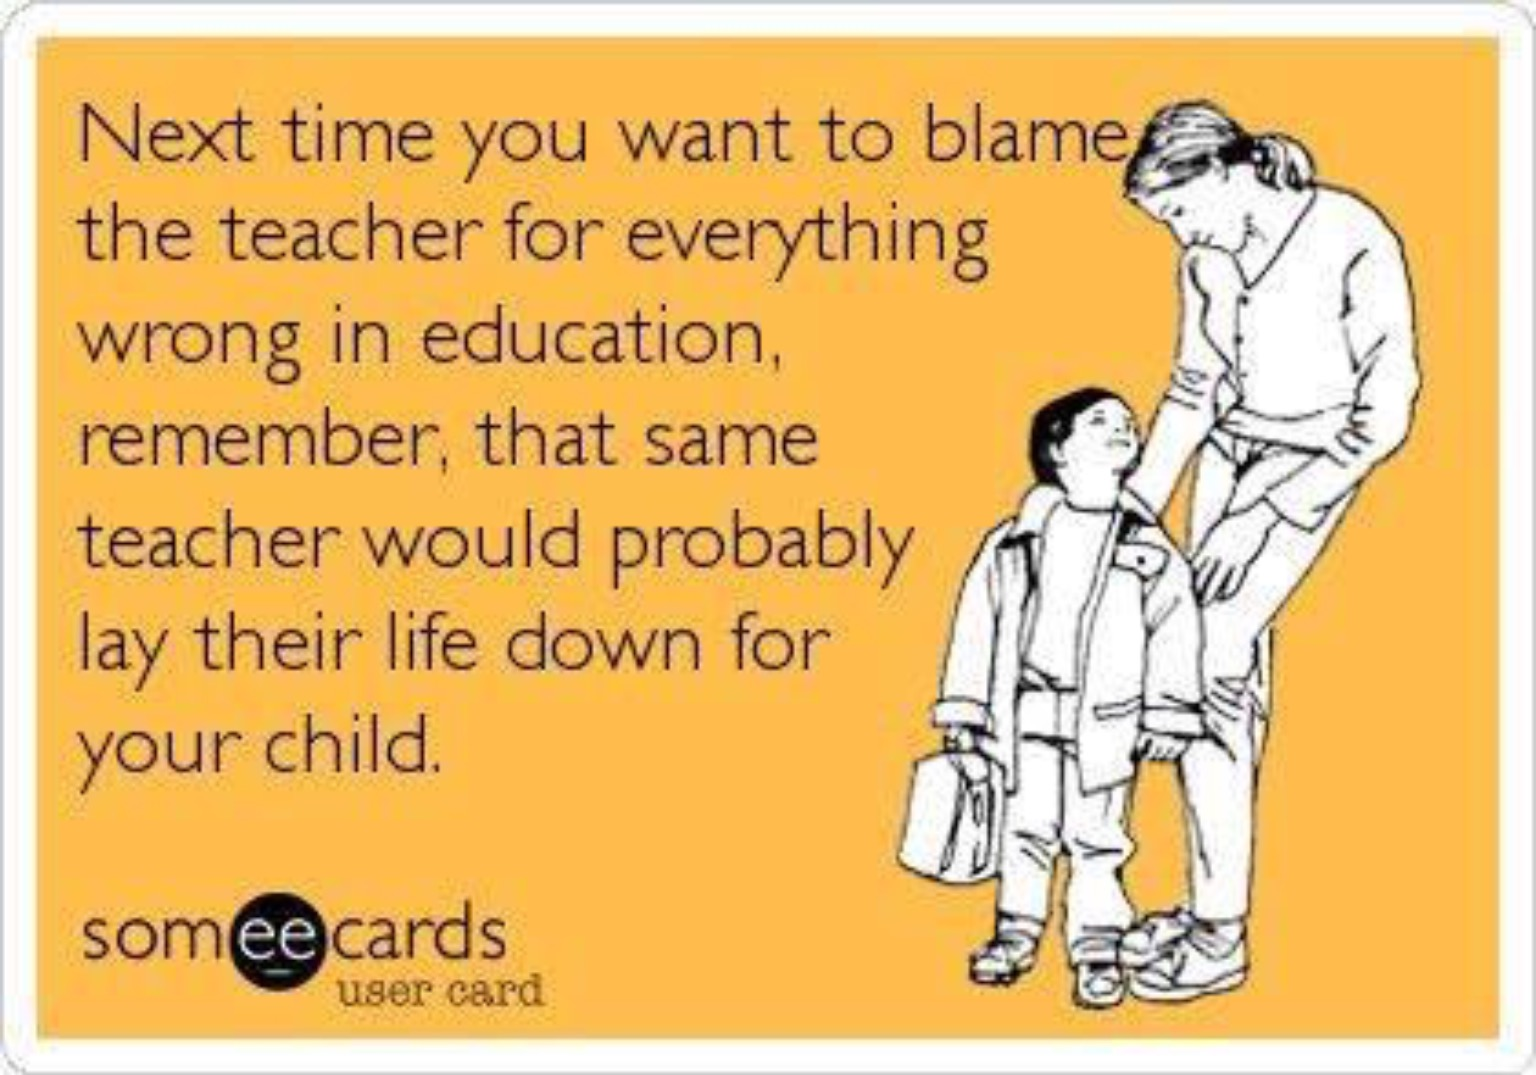 sydney s blog many parents do not work their children at home and then point the finger at the teacher when their child does not progress the same thing can be said